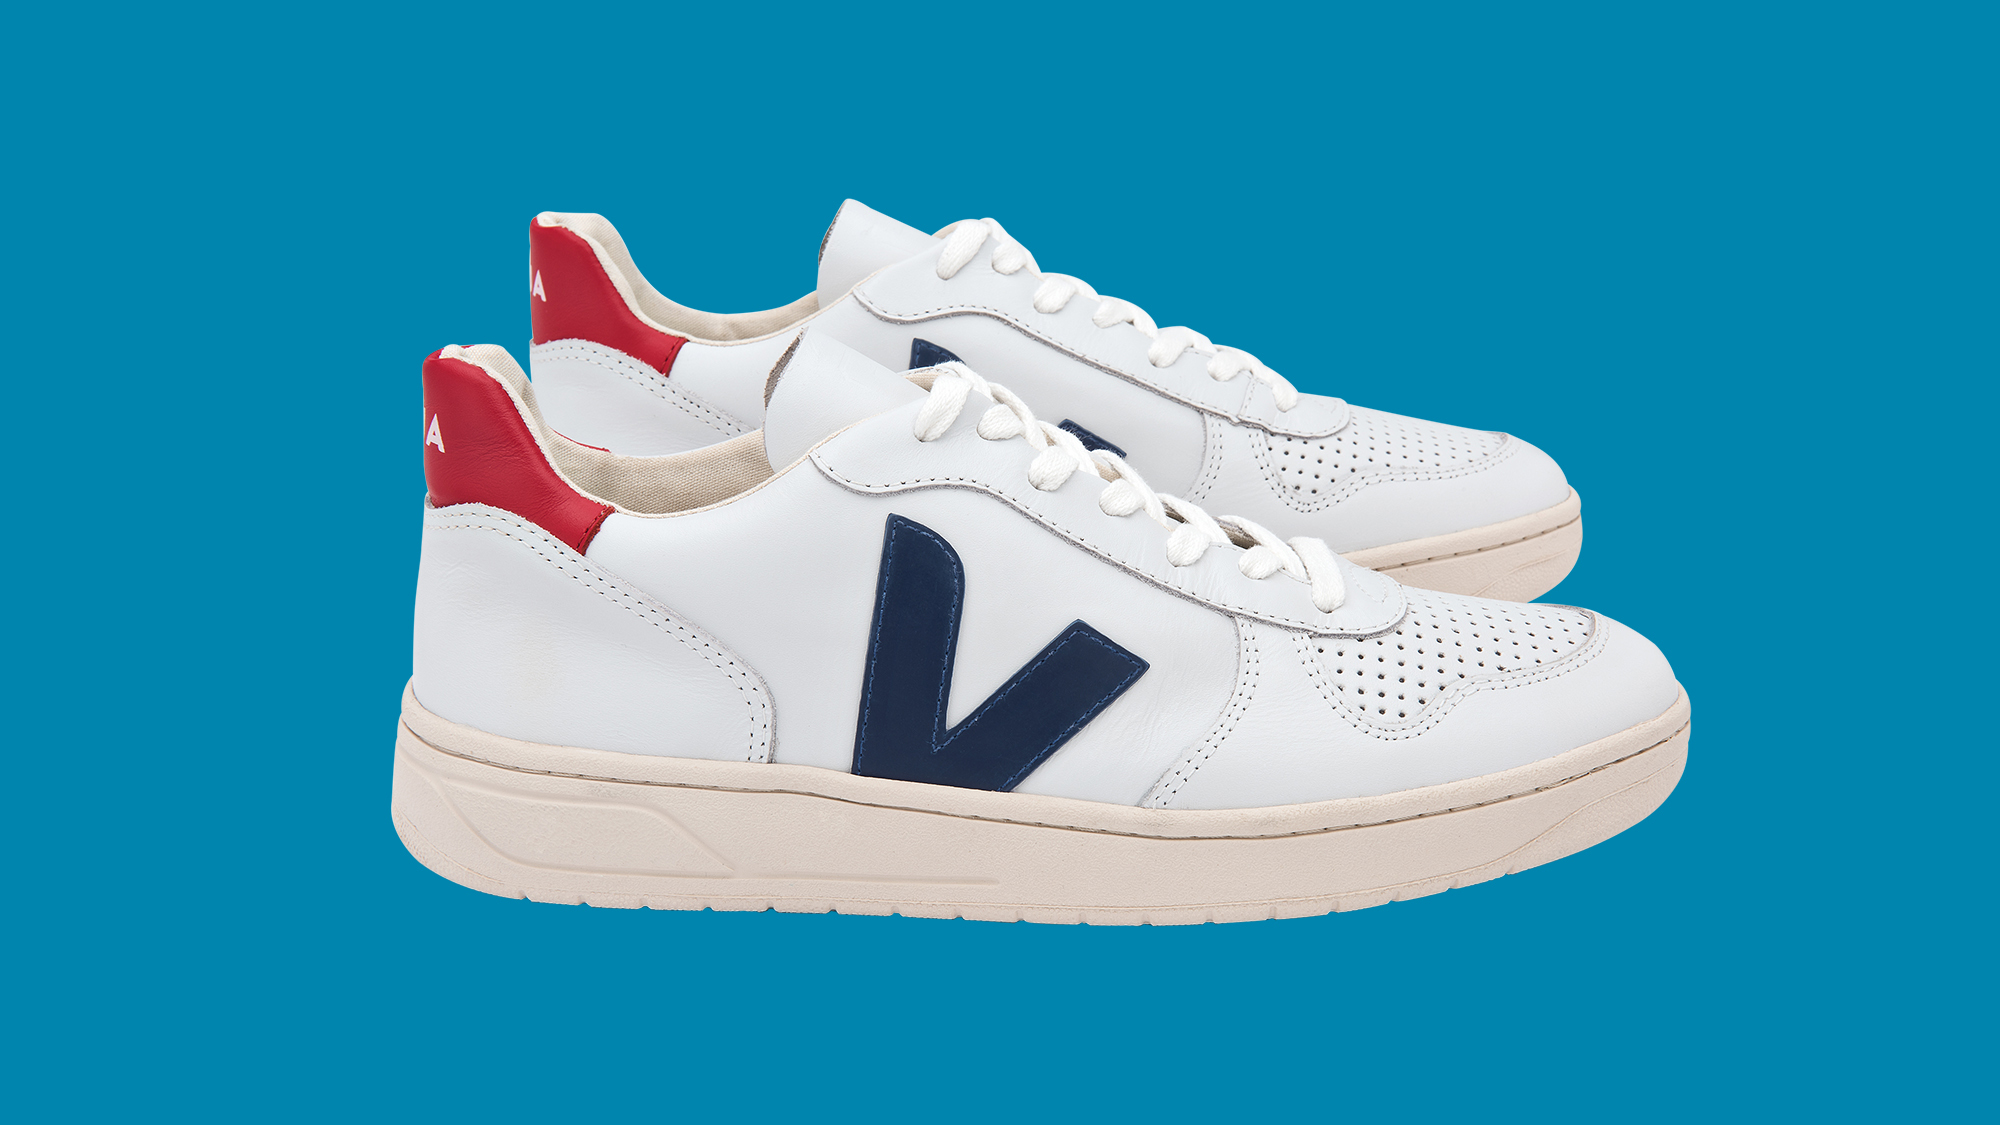 Sneakers from Veja